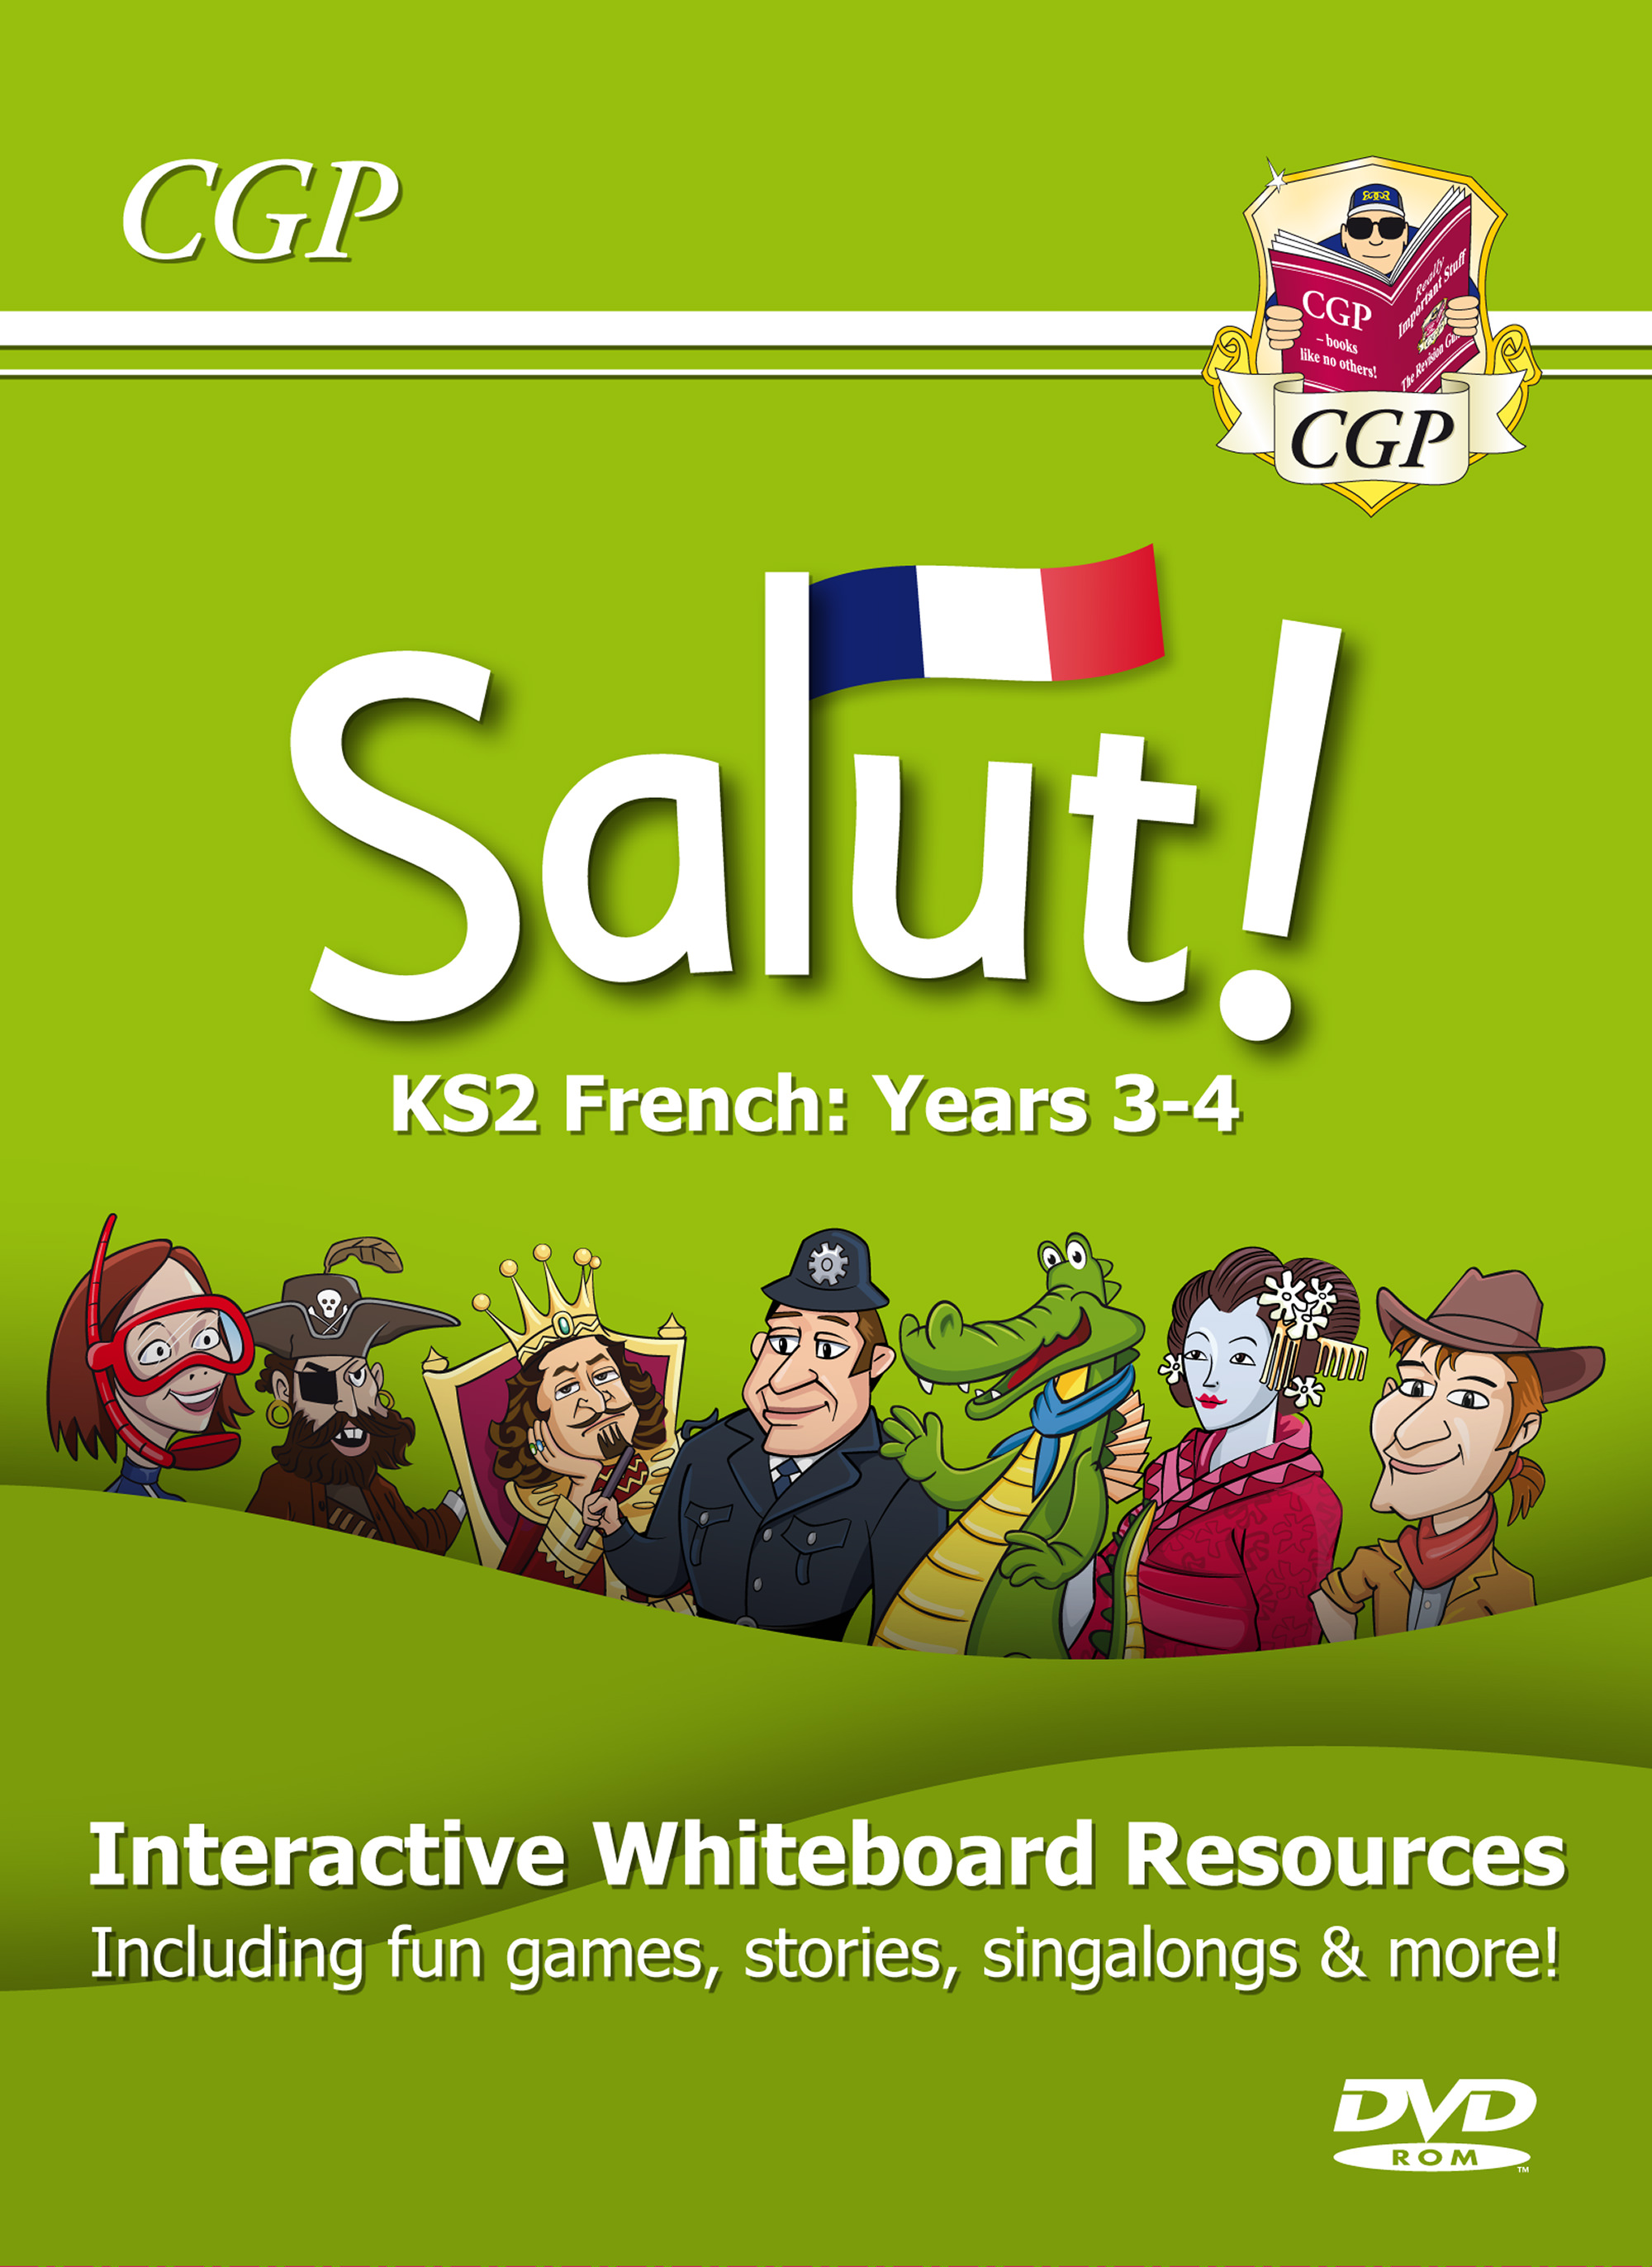 21FS4CP - Salut! KS2 French Interactive Whiteboard Resources - Years 3-4 (DVD-ROM)